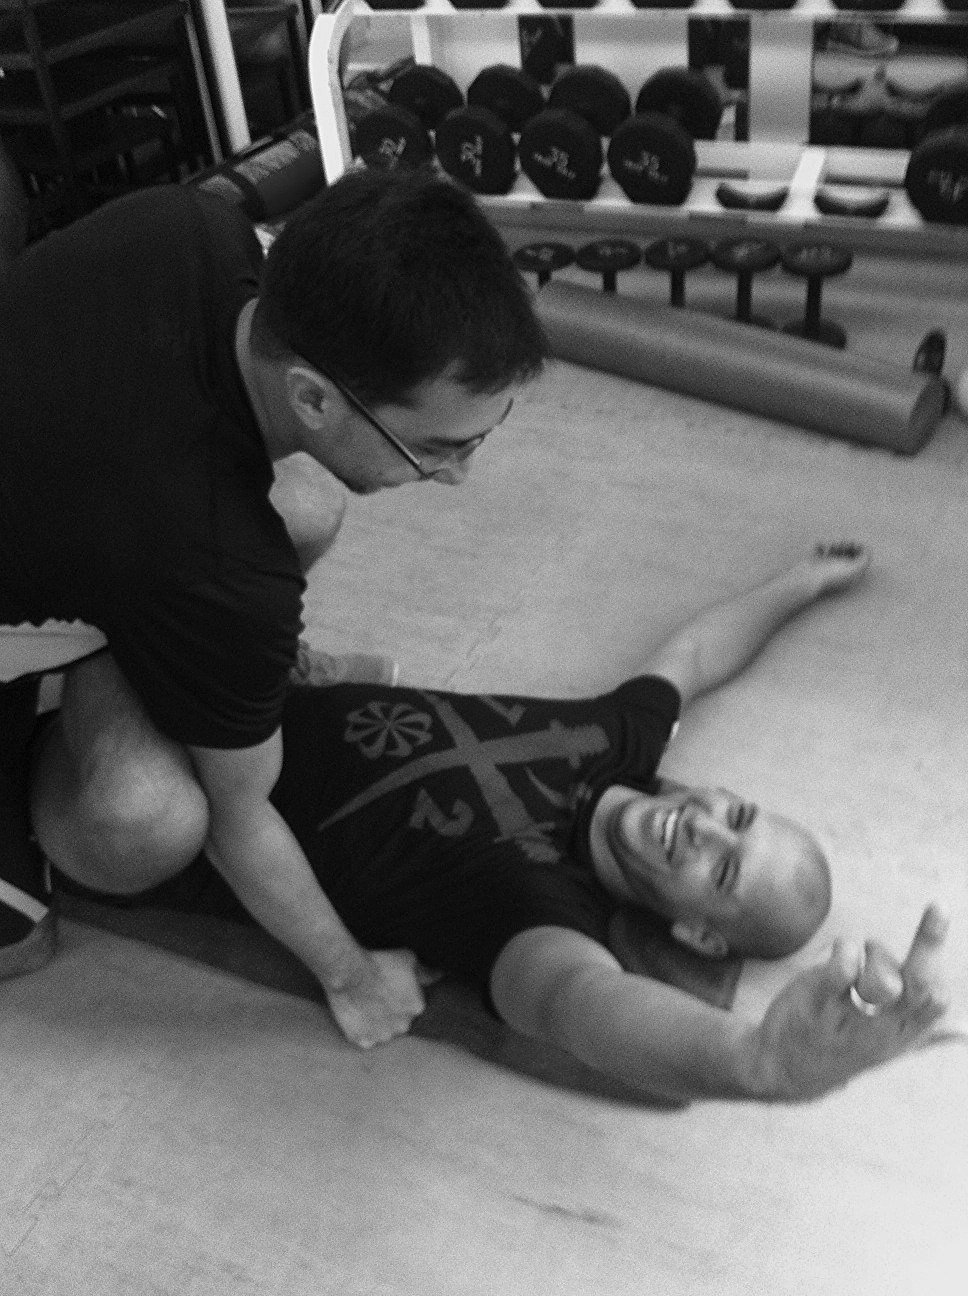 Personal trainers Singapore, Carl Jan De Vries, Stretching, IFC Personal training.jpg